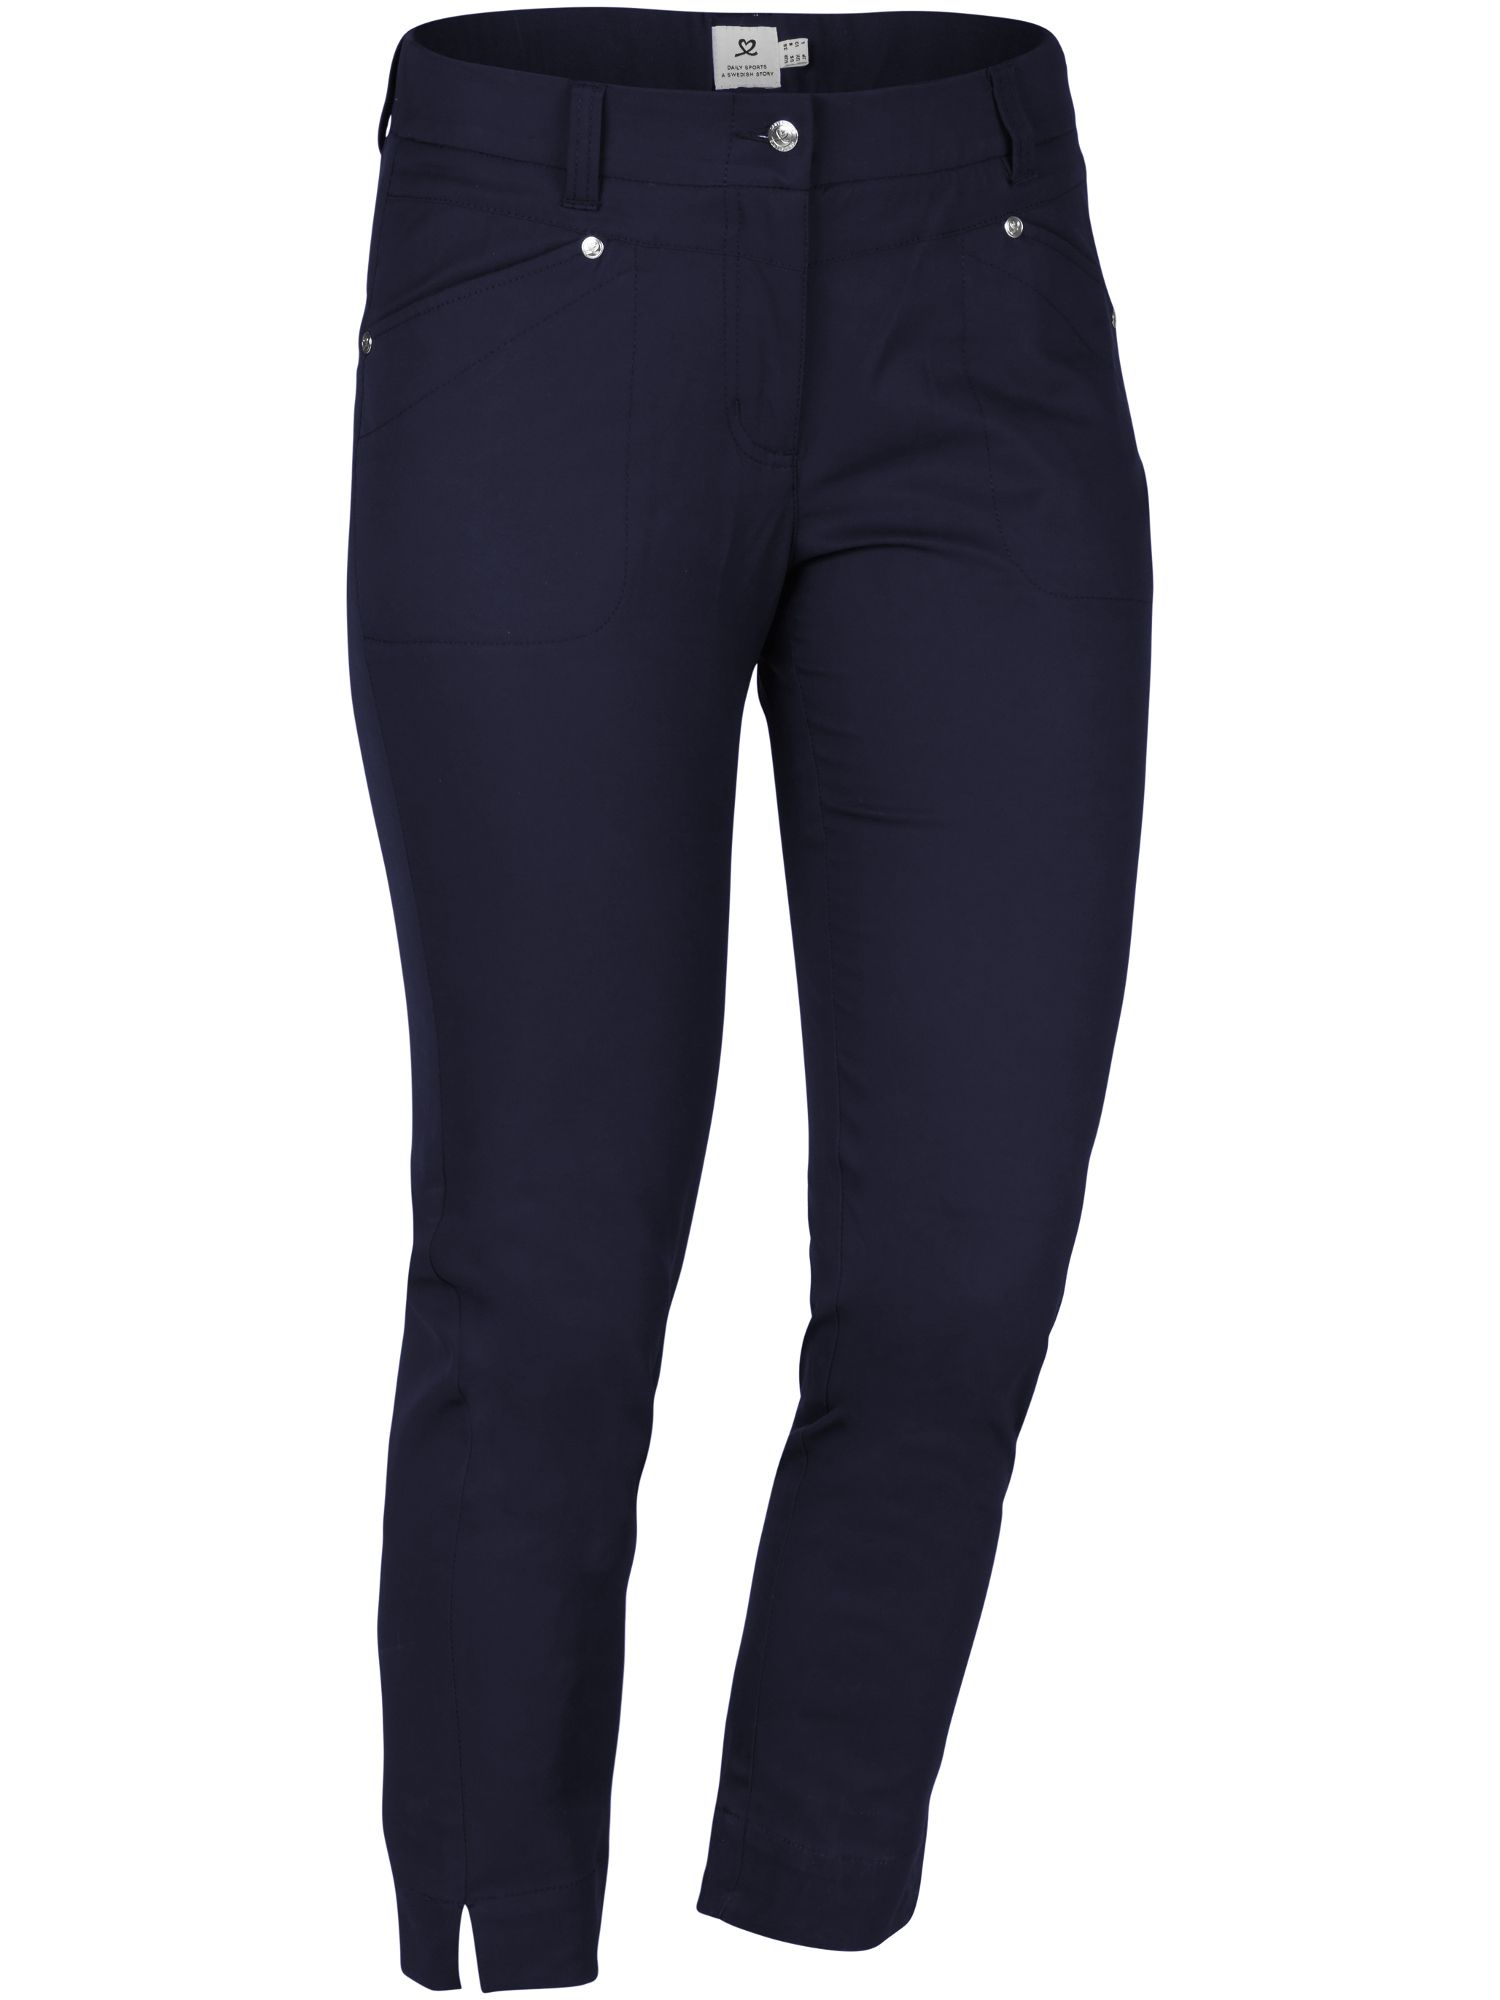 Daily Sports Lyric High Water Trousers, Blue